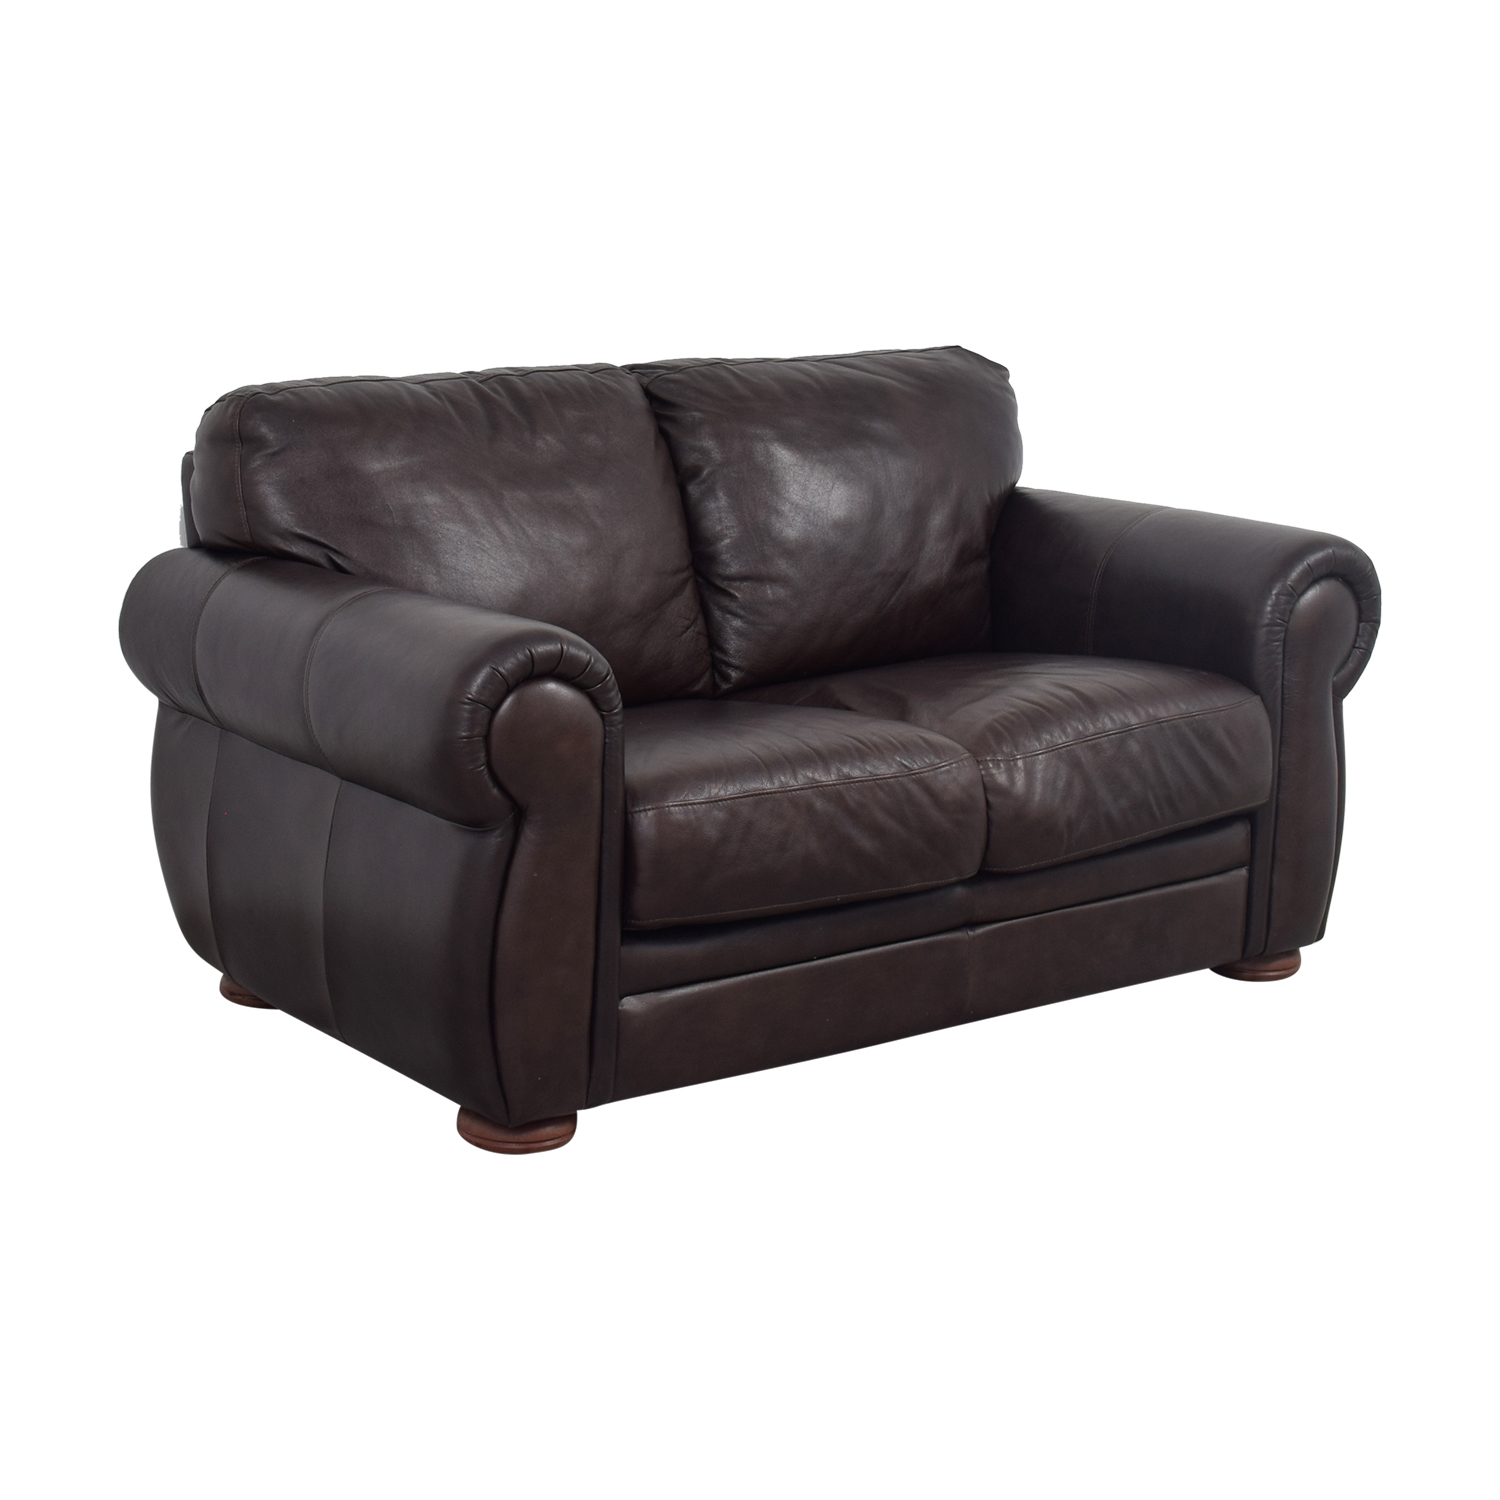 shop Raymour & Flanigan Raymour & Flanigan Brown Leather Two-Cushion Sofa online